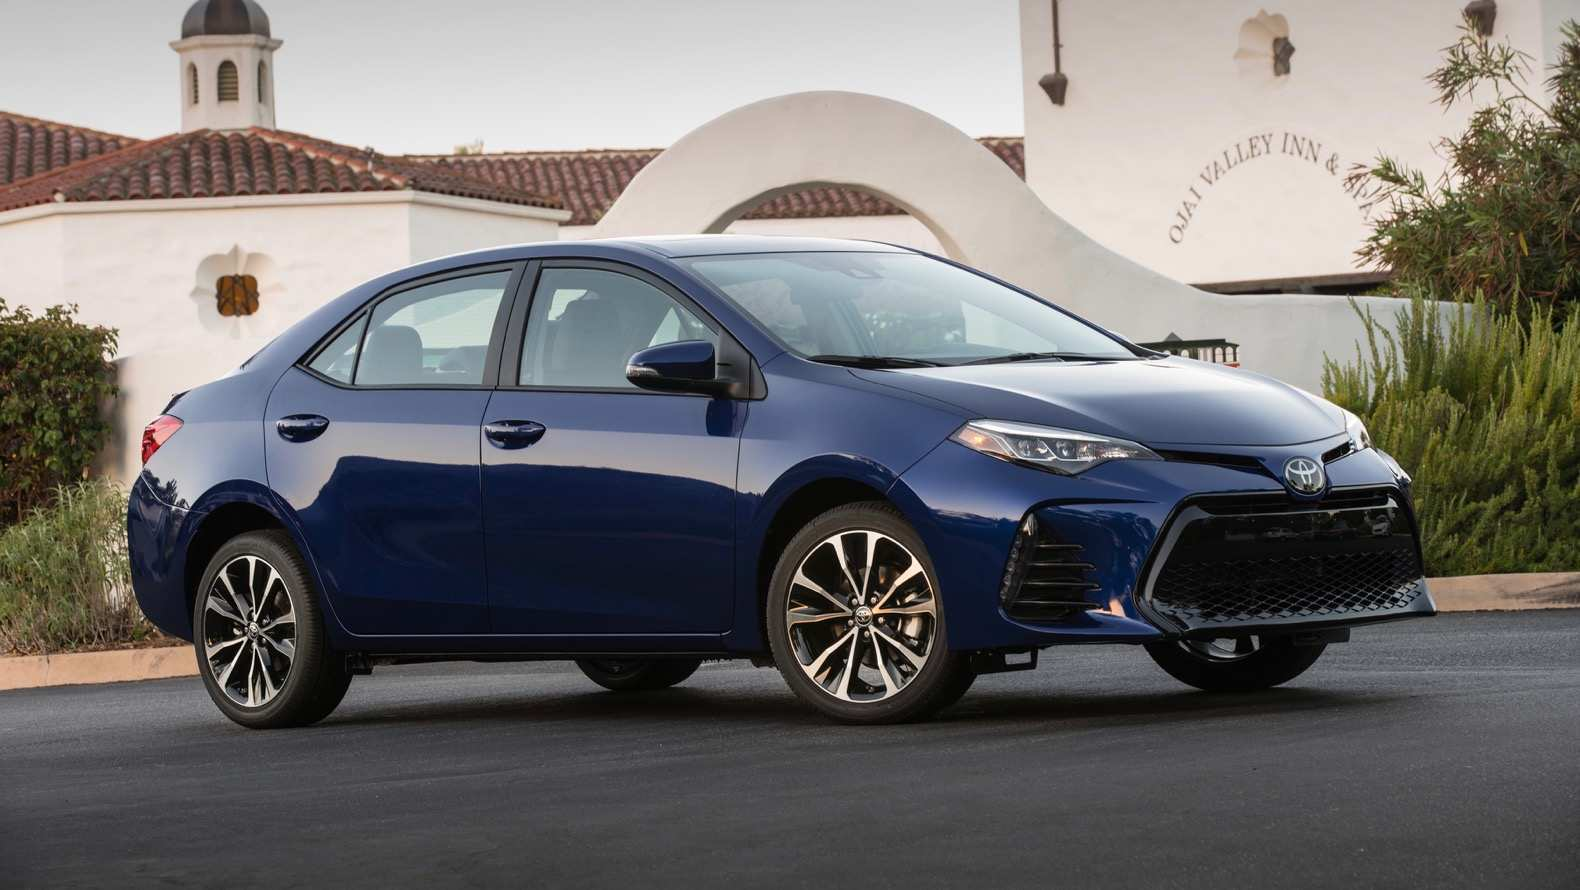 67 All New 2020 Toyota Corolla Redesign New Concept with 2020 Toyota Corolla Redesign